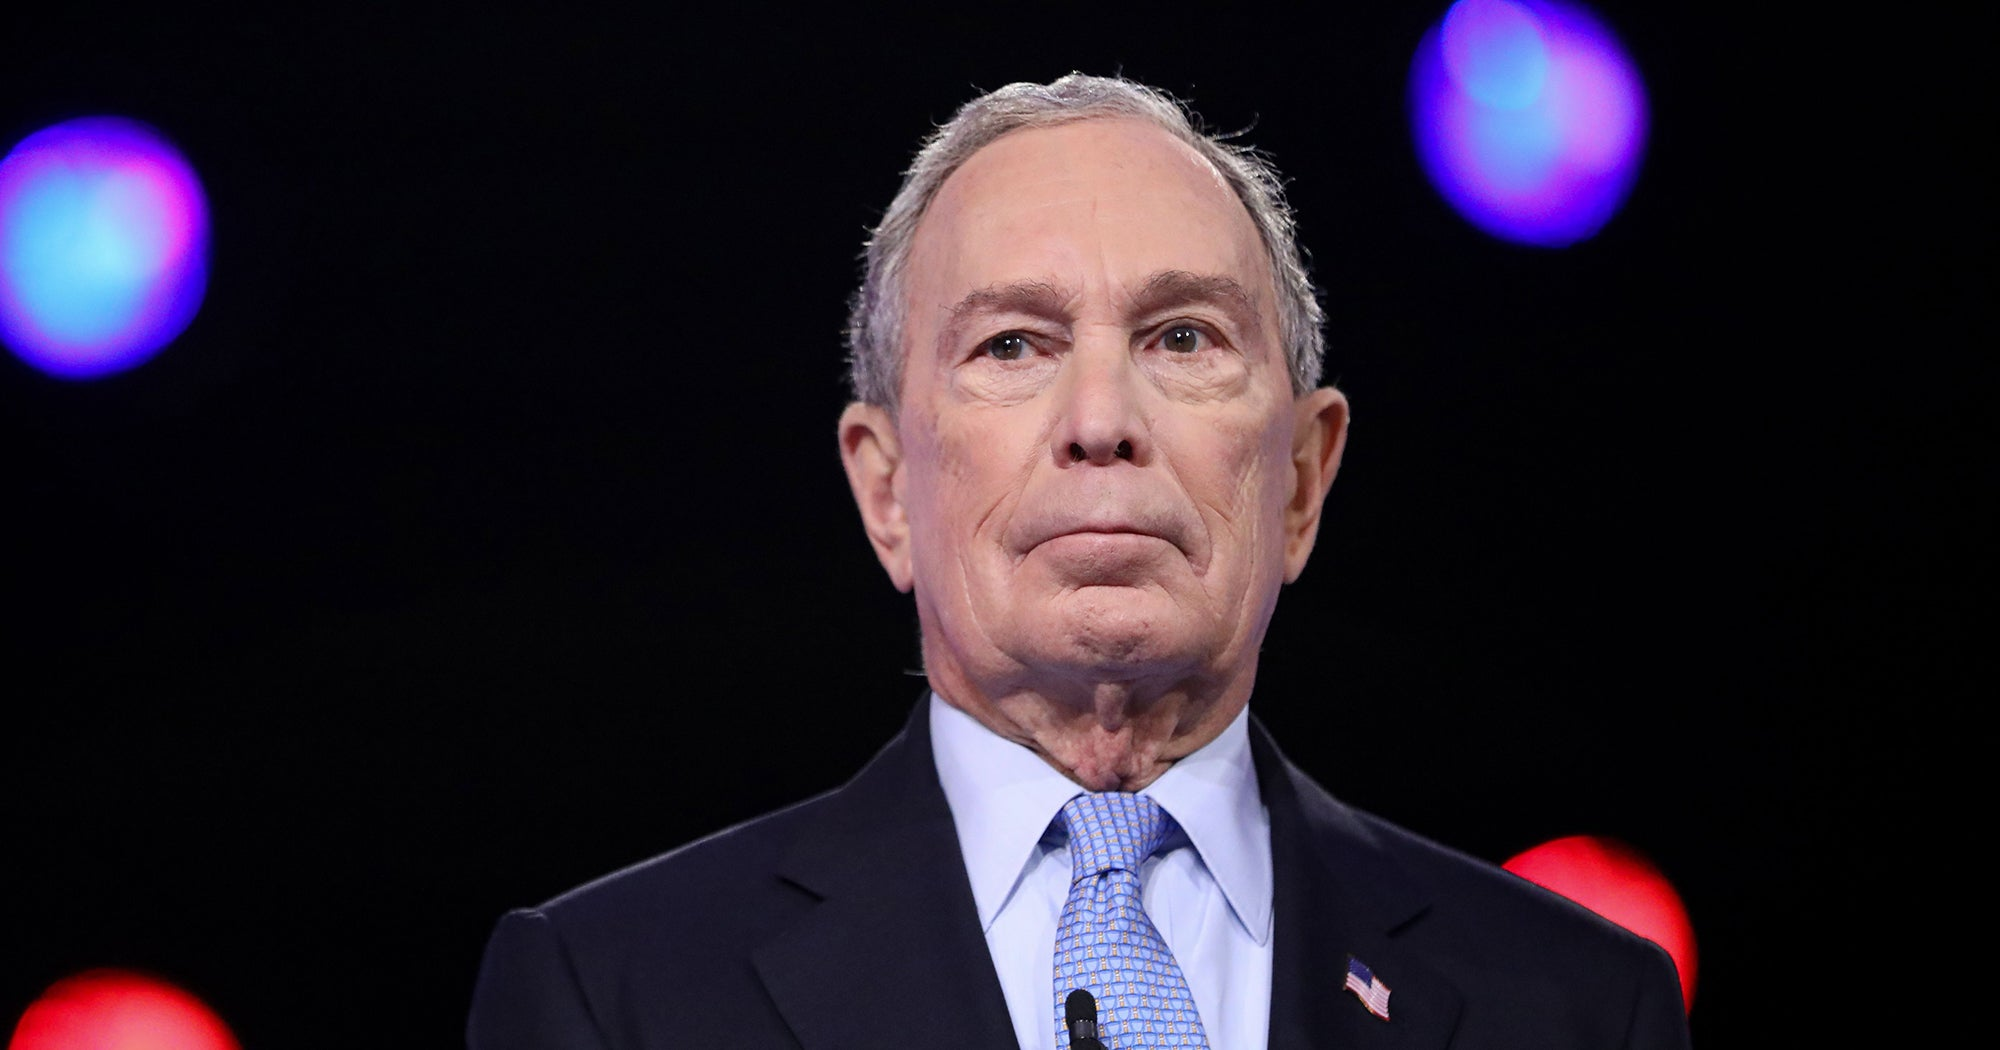 What Bloomberg Says He'll Do For Women If Elected